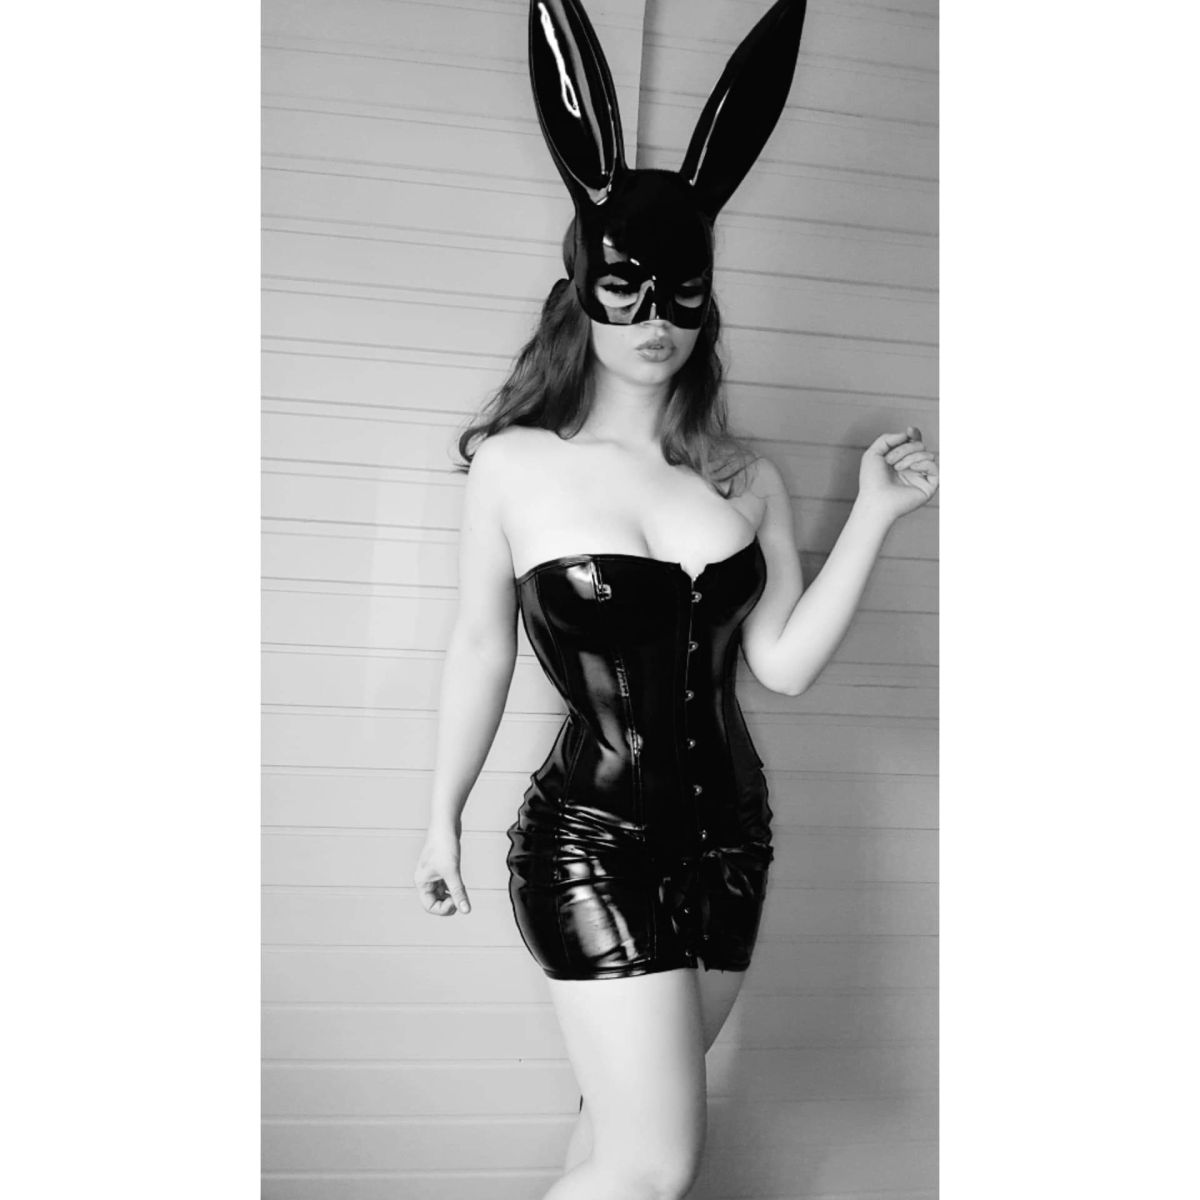 XO Bunny nudes onlyfans onlyfans leaked